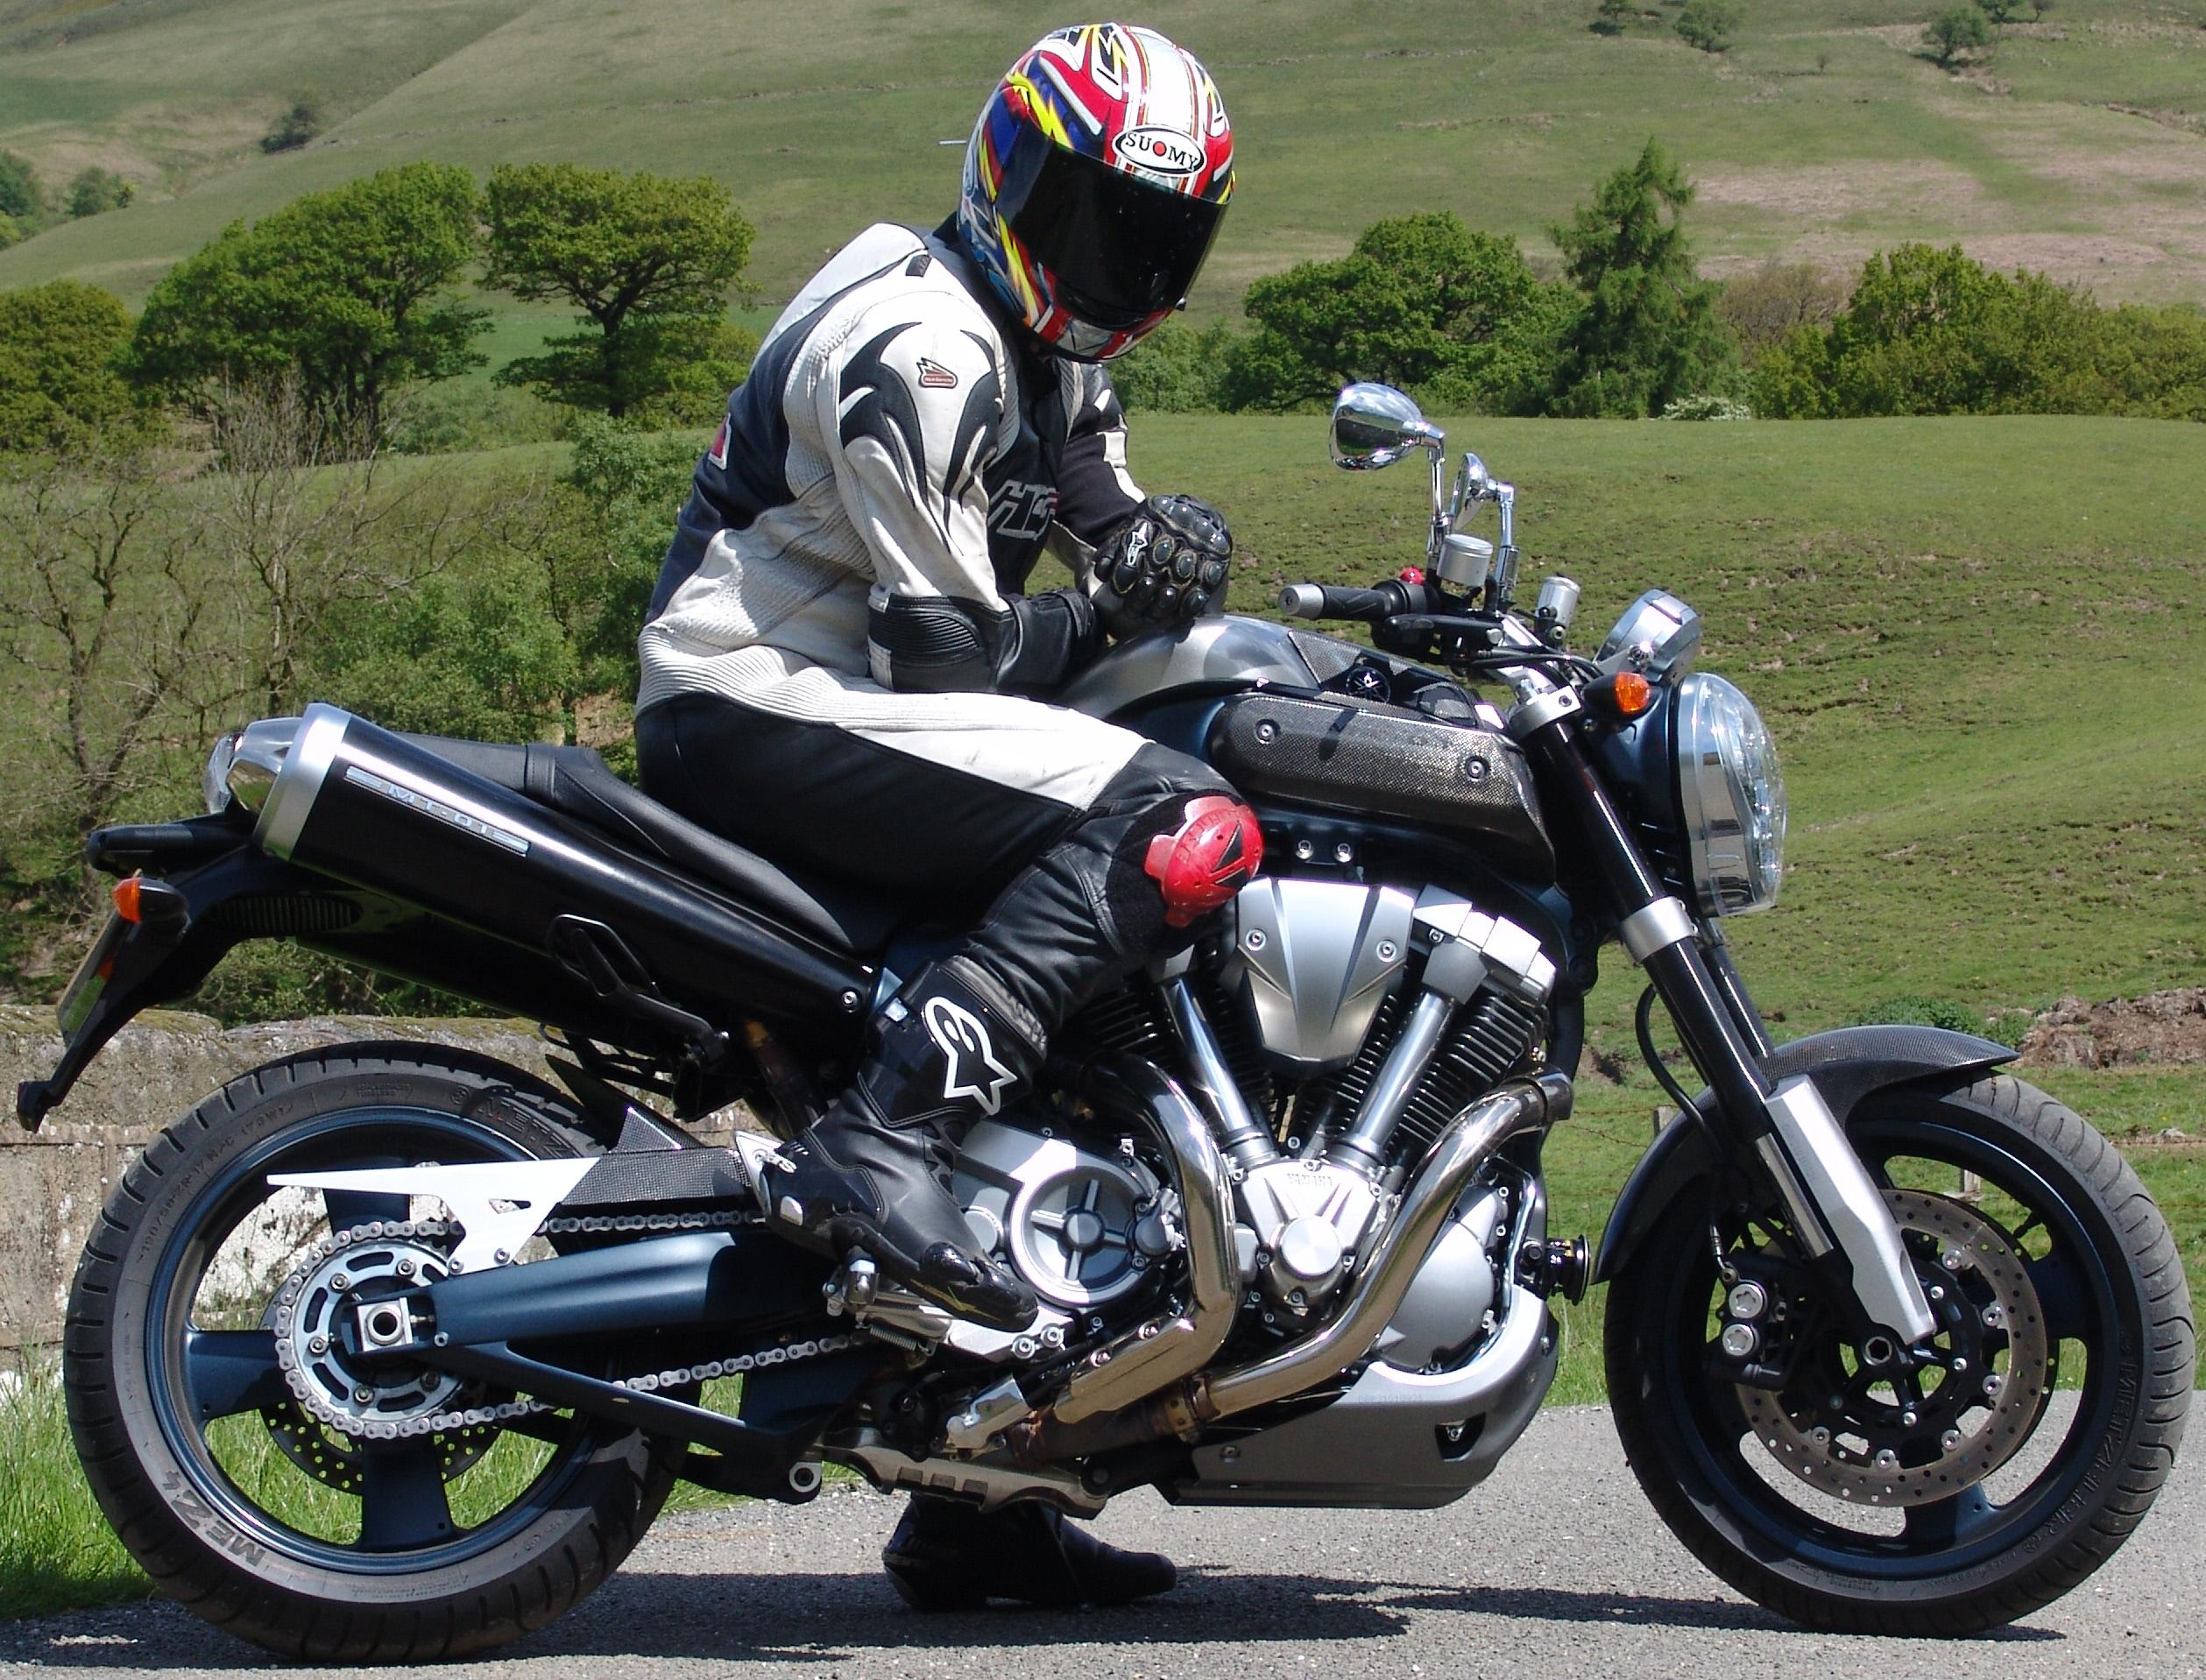 yamaha mt 01 photos photogallery with 12 pics. Black Bedroom Furniture Sets. Home Design Ideas